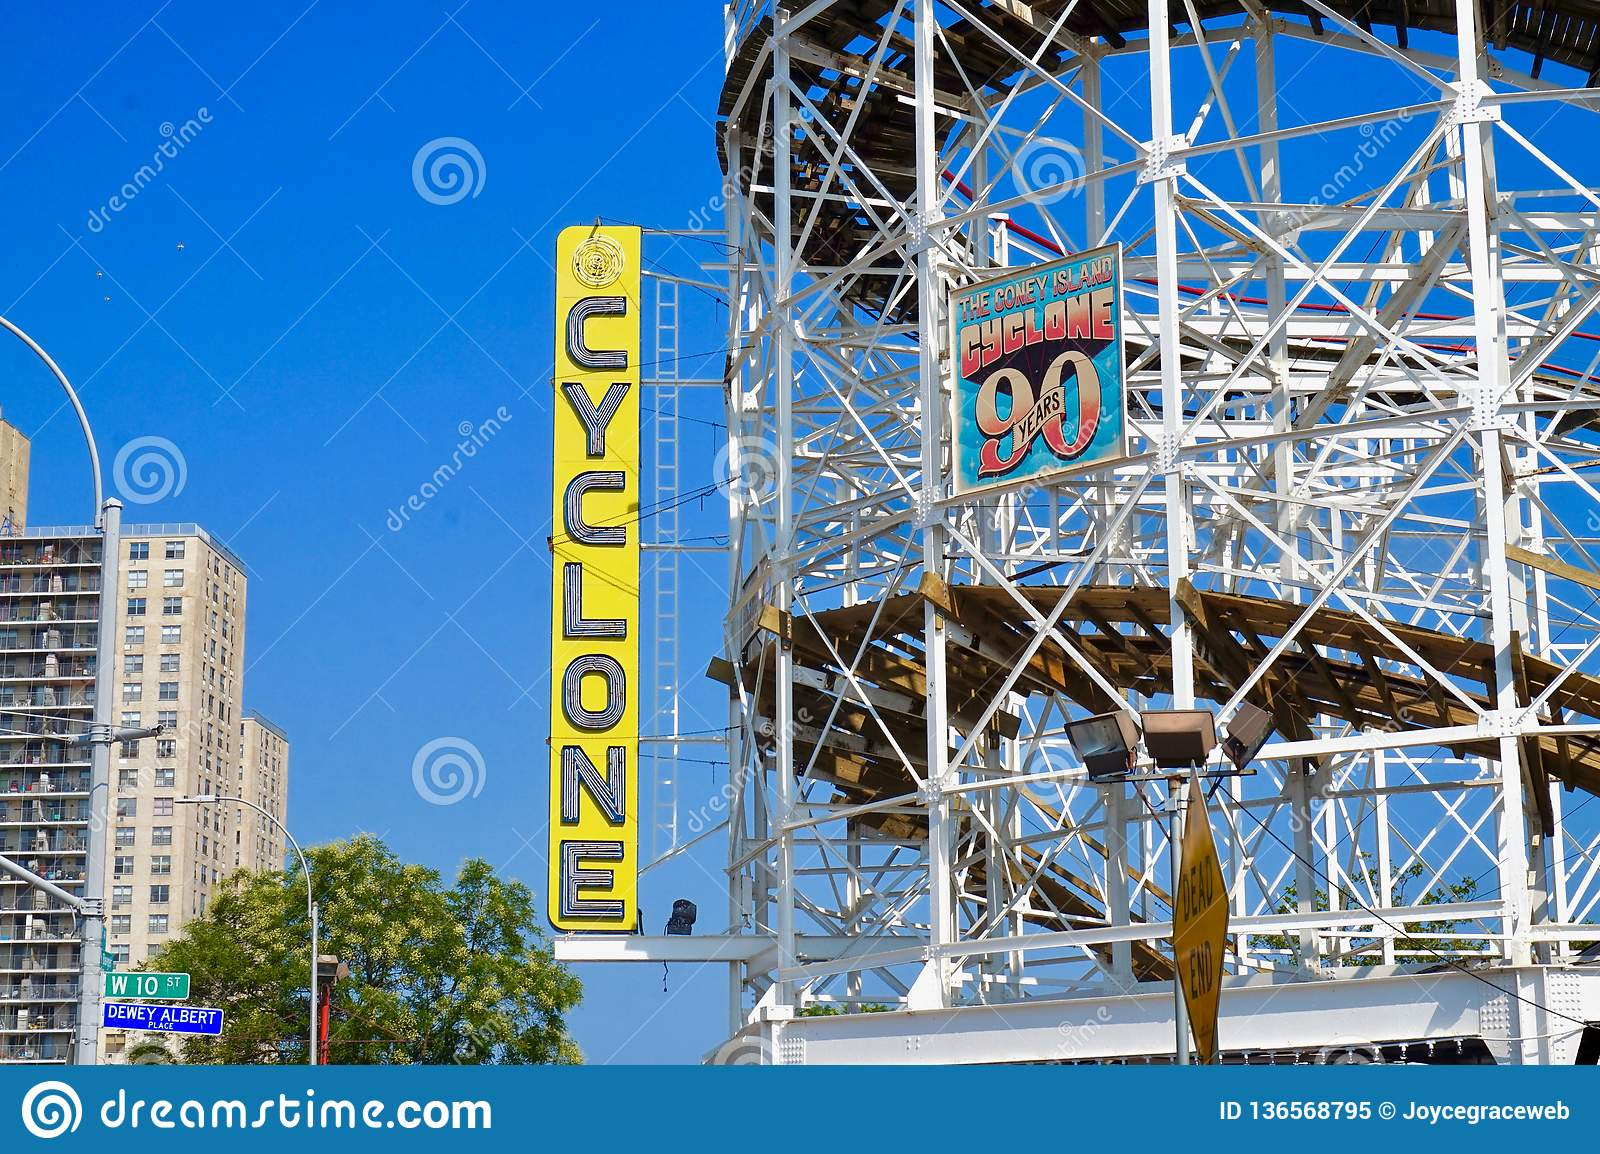 Roller Coaster Stock Images - Download 10,695 Royalty Free ...